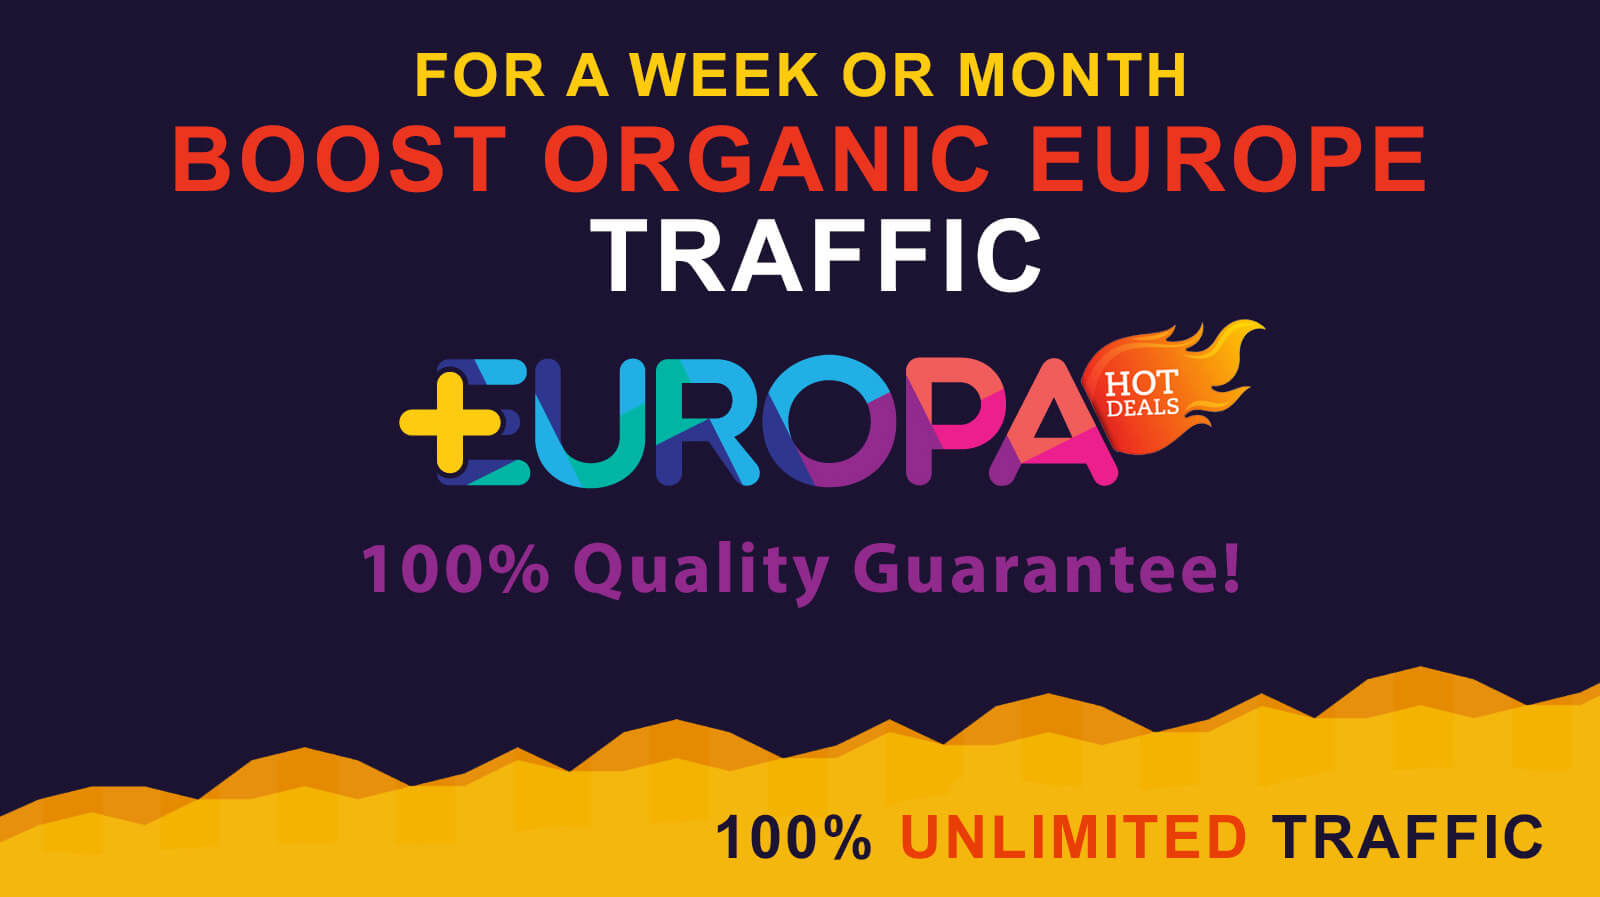 UNLIMITED-MOBILE-TRAFFIC-FOR-A-WEEK-OR-MONTH-PLUS-BONUS